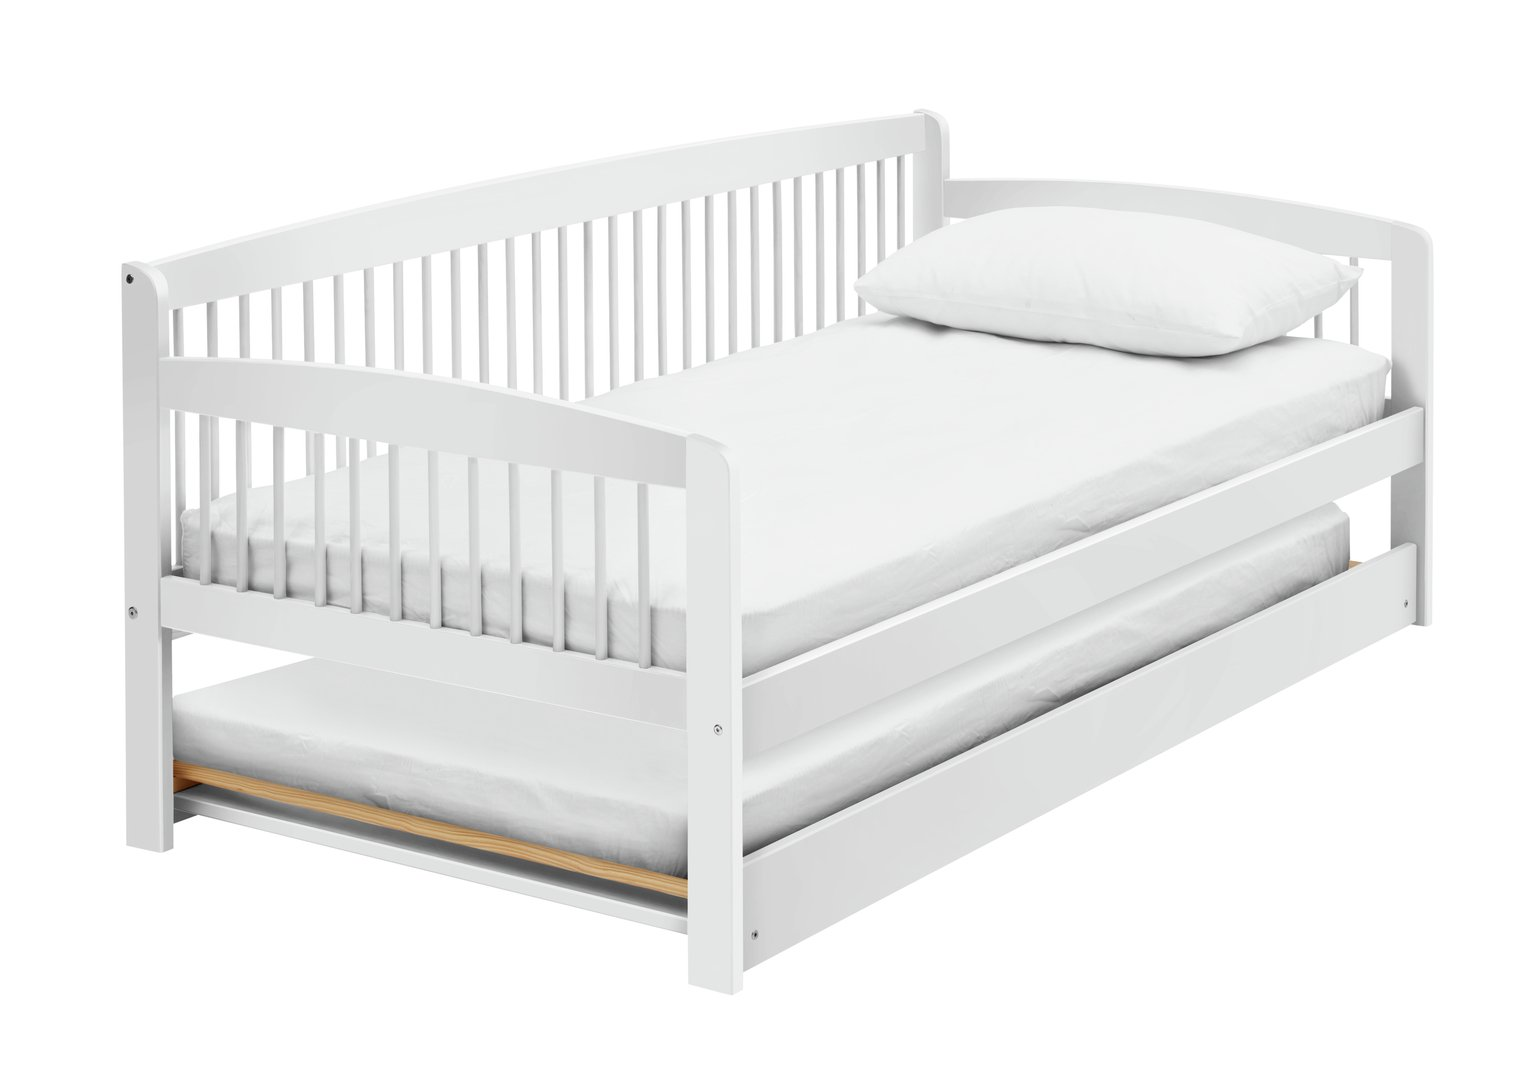 Argos Home Andover Wooden Day Bed and Trundle - White